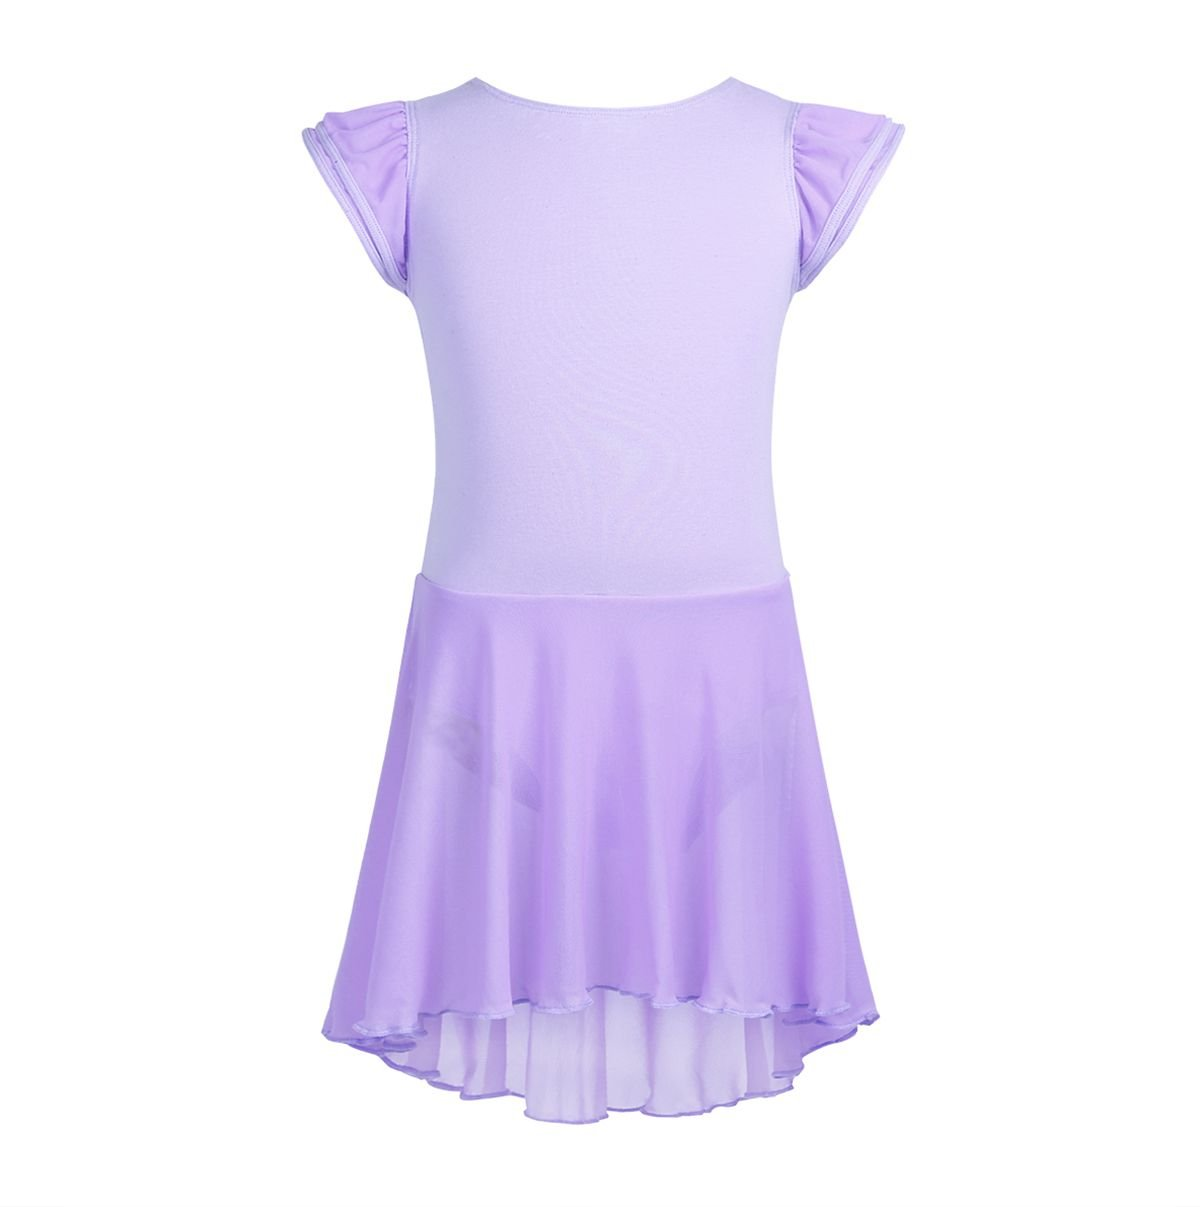 CHICTRY Kids Girls Dance Dress Gymnastics Ballet Skirted Leotard with Flutter Sleeves Lavender 5-6